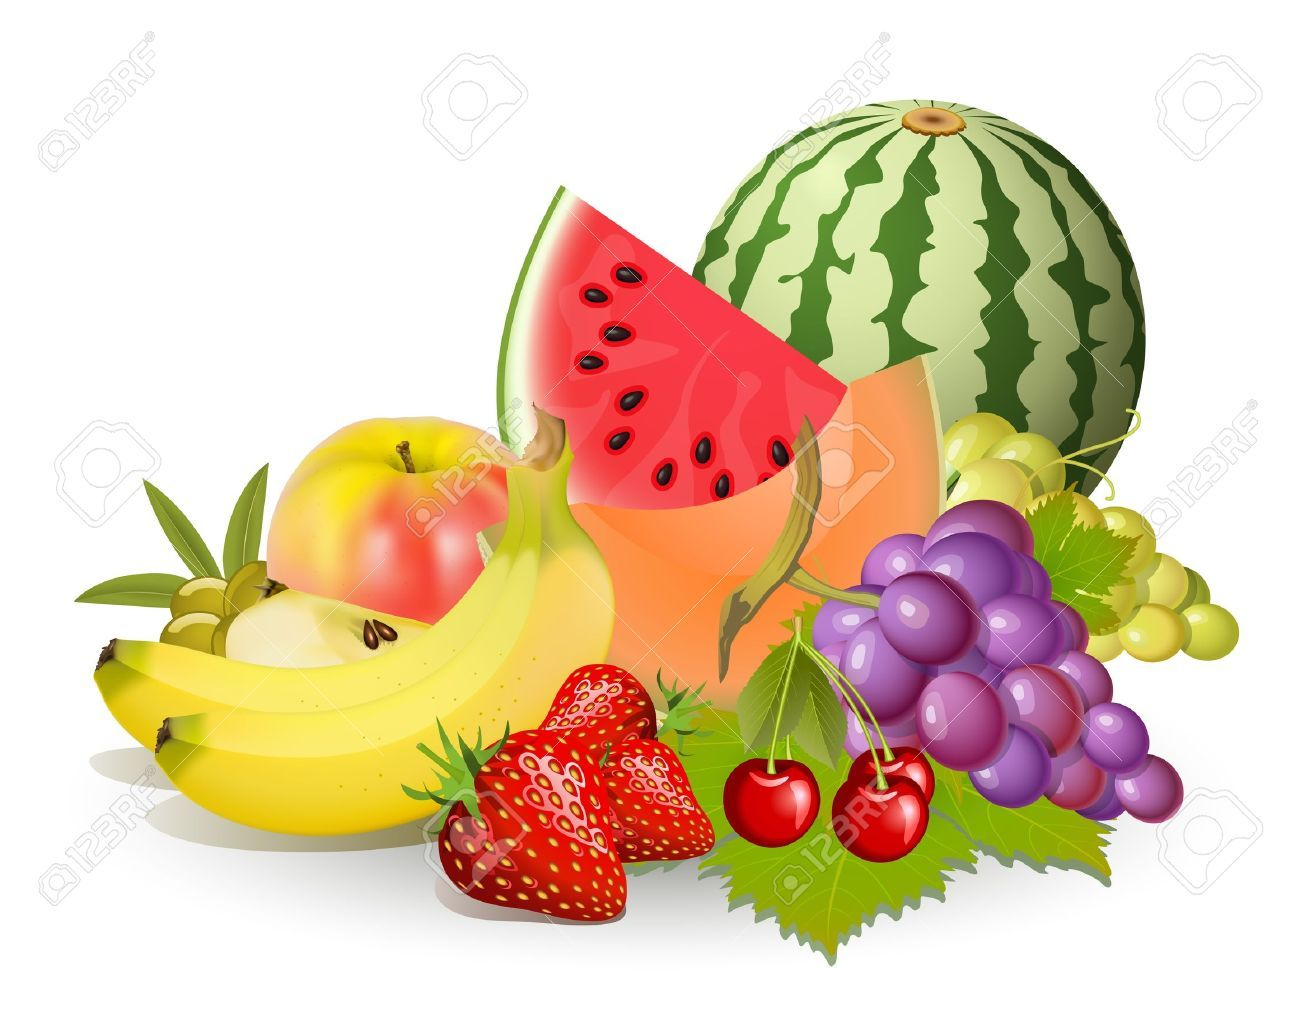 Fruit Food Group Clip Art